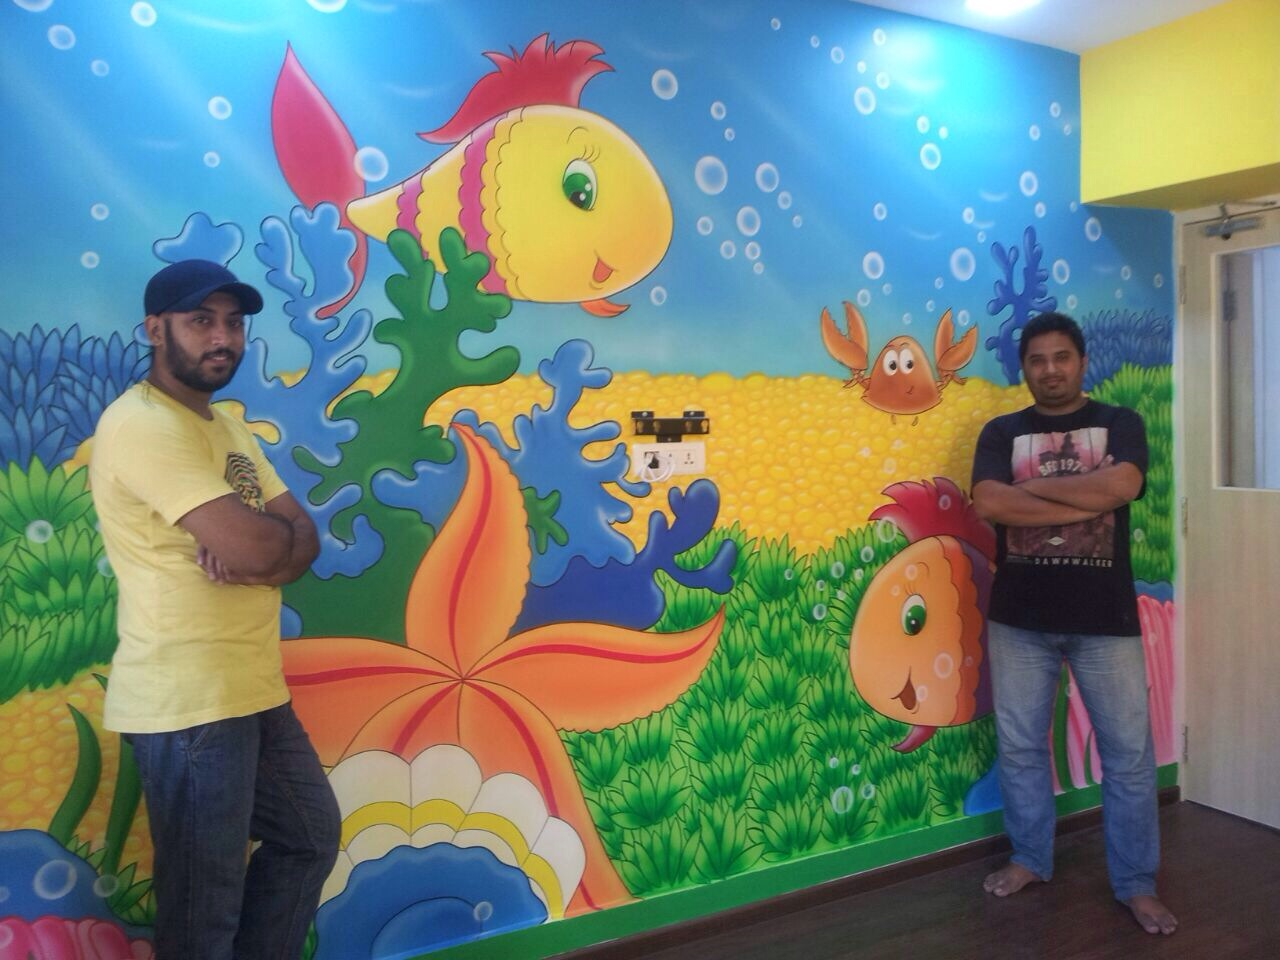 Mumbai Kindergarten Wall Painting  Facebook Page. Dinner Ideas Yummy Tummy. Nursery Theme Ideas Neutral. Color Mixing Ideas For Preschoolers. Porch Ideas For Apartments. Garden Bench Plans Metric. Diy Ideas Baby. Condo Galley Kitchen Ideas. Decorating Ideas Vintage Campers